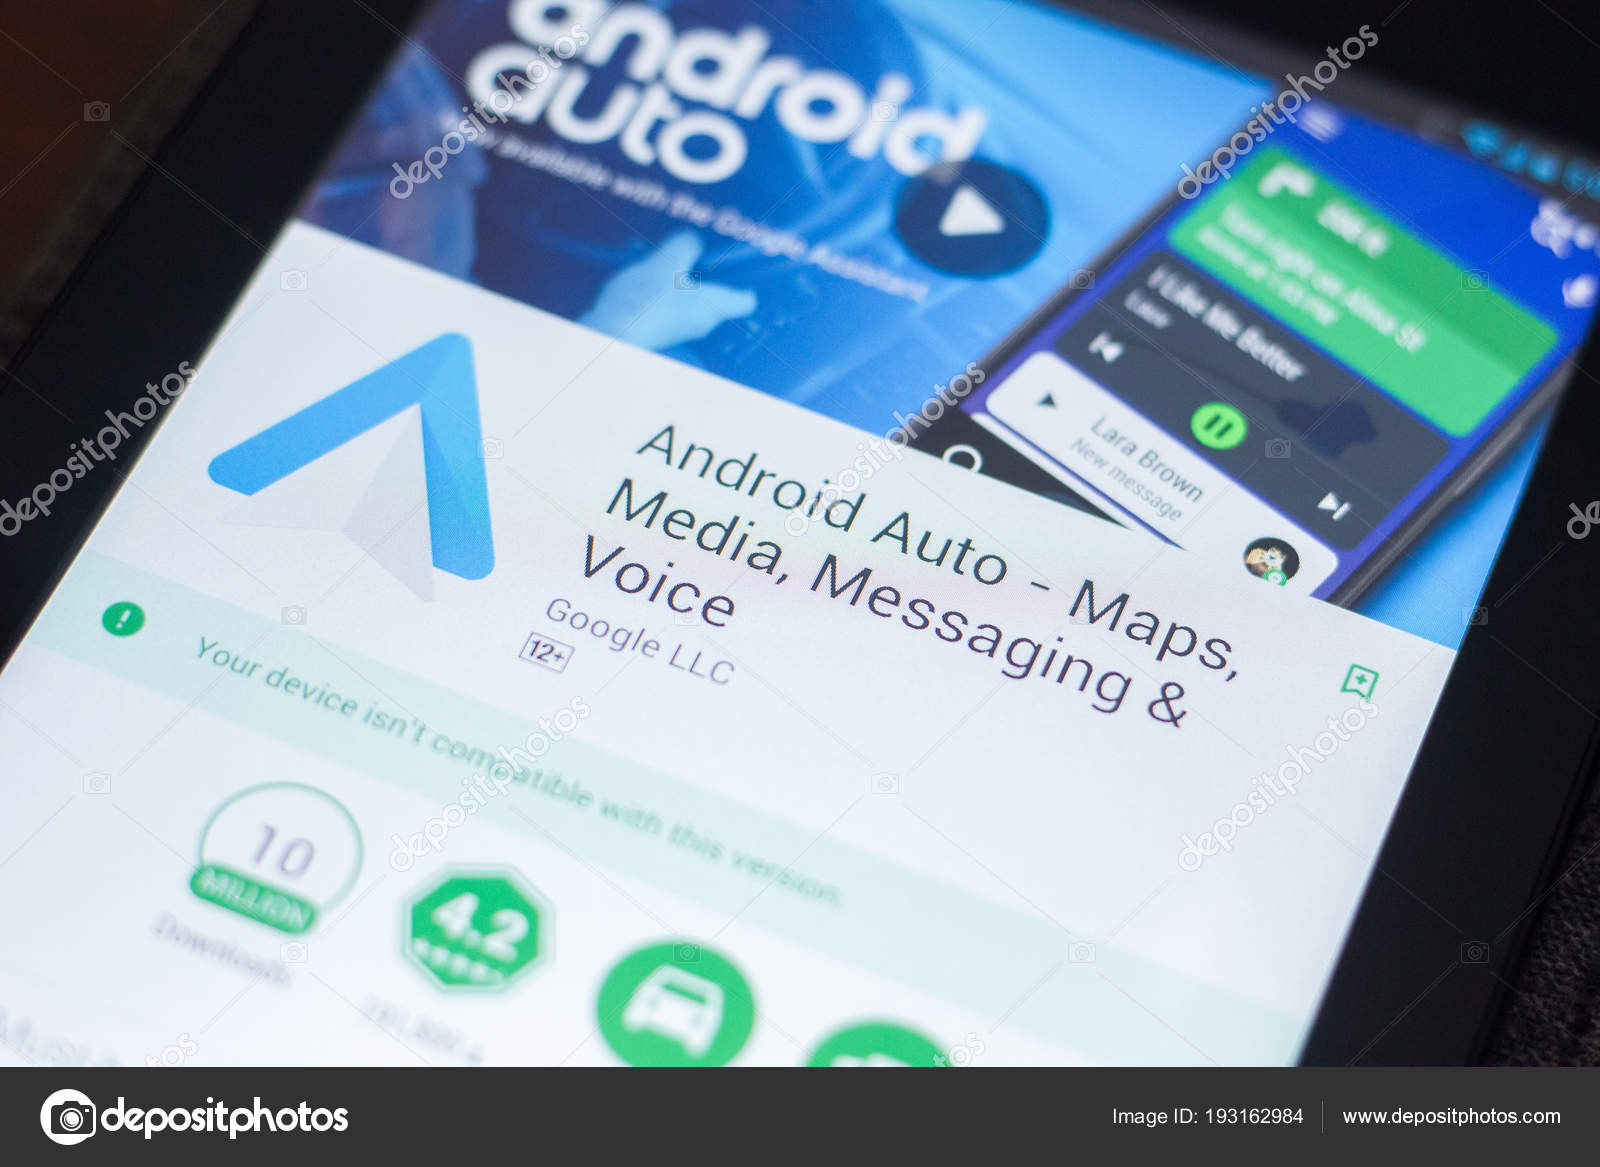 Android Auto App Download